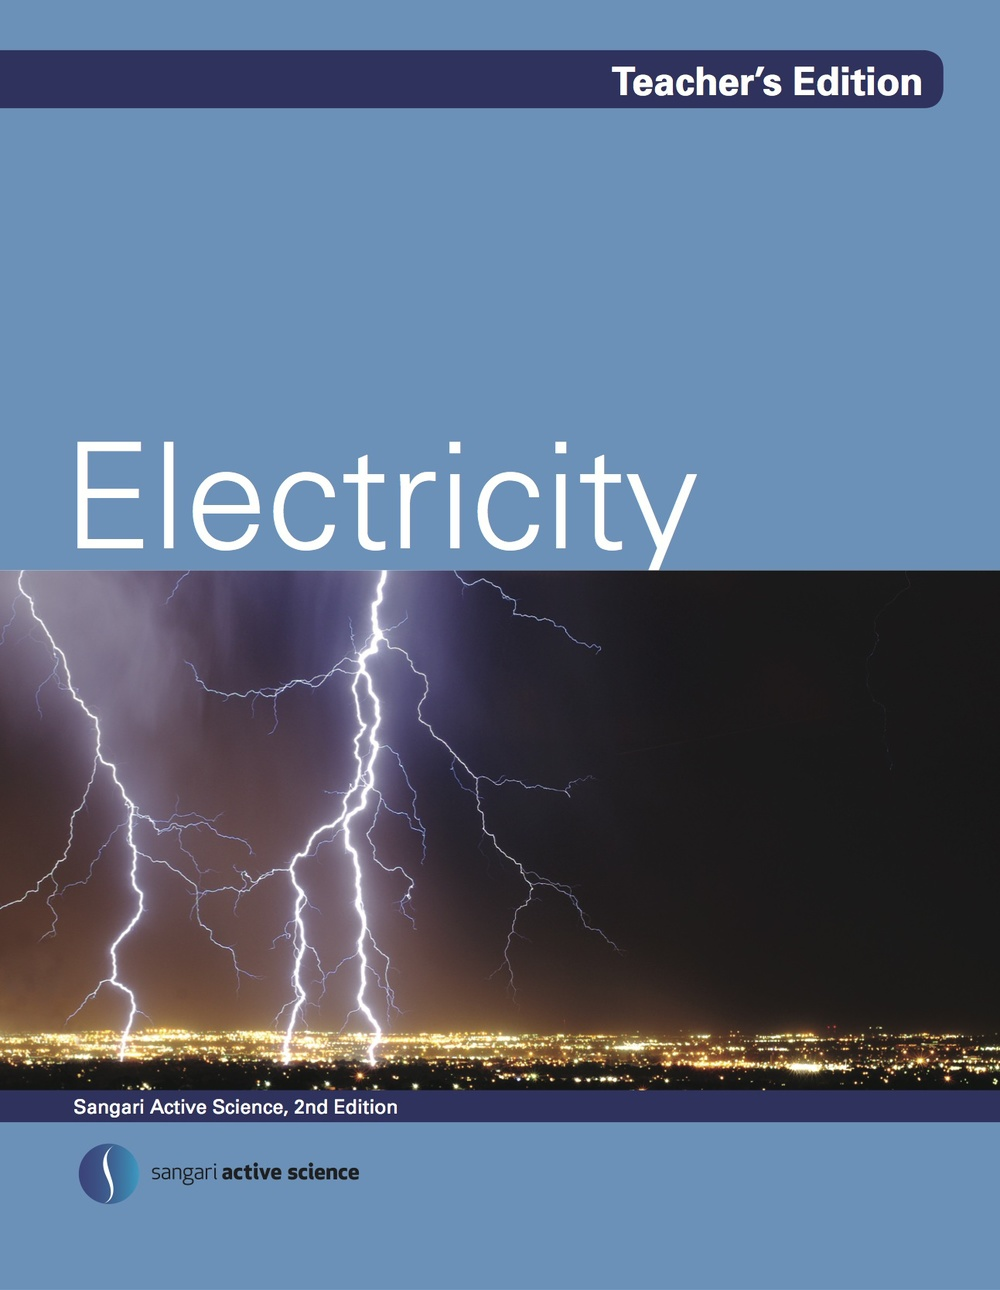 san-electricity-te-cover.jpg